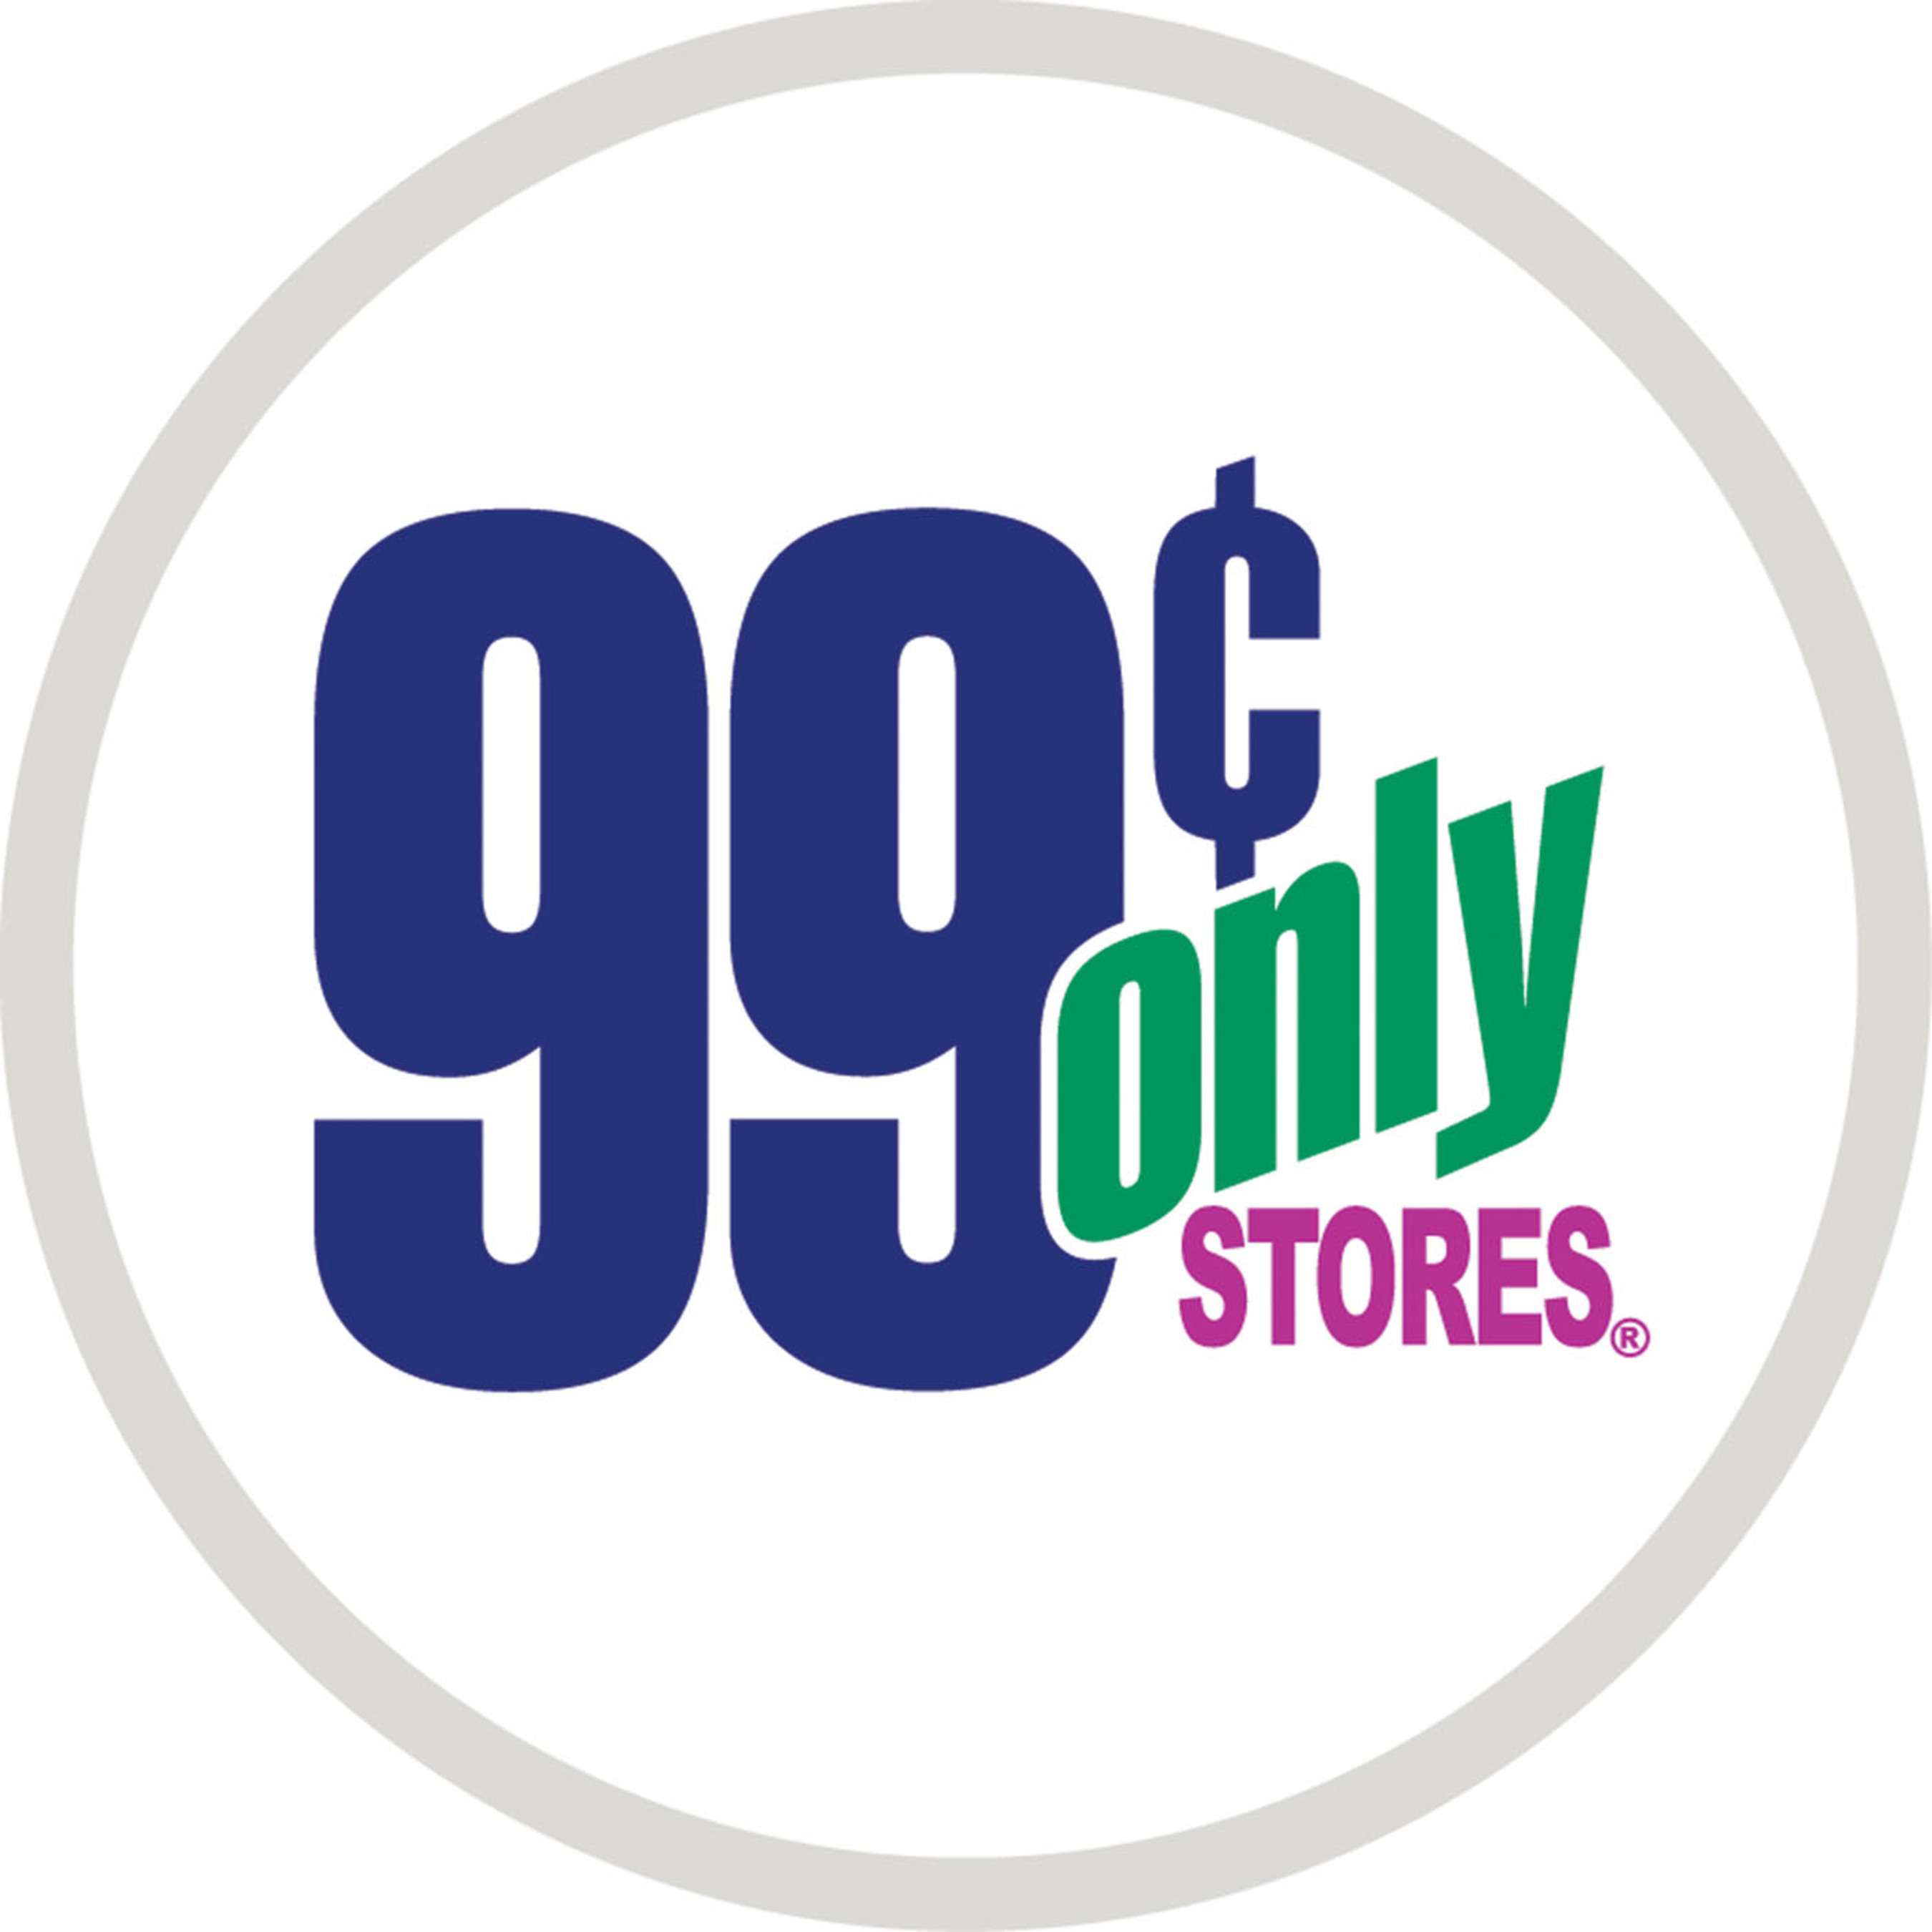 99 Cents Only Stores LLC